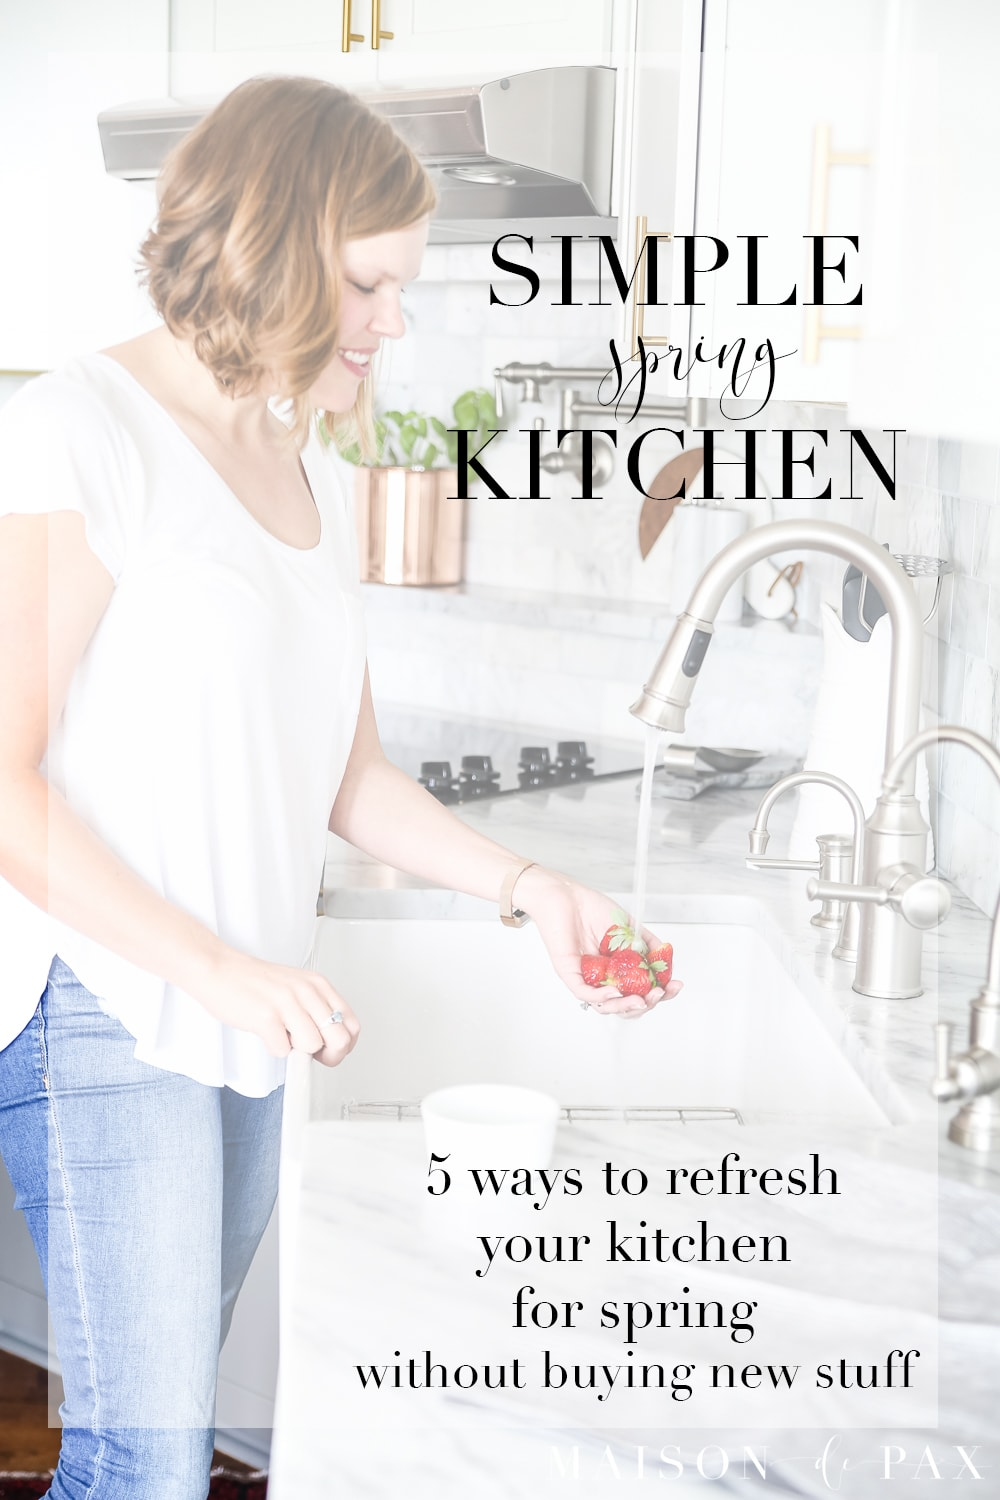 Looking for simple spring kitchen inspiration?  Find five tips on adding a fresh, clean feeling to your kitchen this spring. #springkitchen #kitcheninspo #marblekitchen #kitchendesign #springdecor #springdecorating #kitchendecor #twotonekitchen